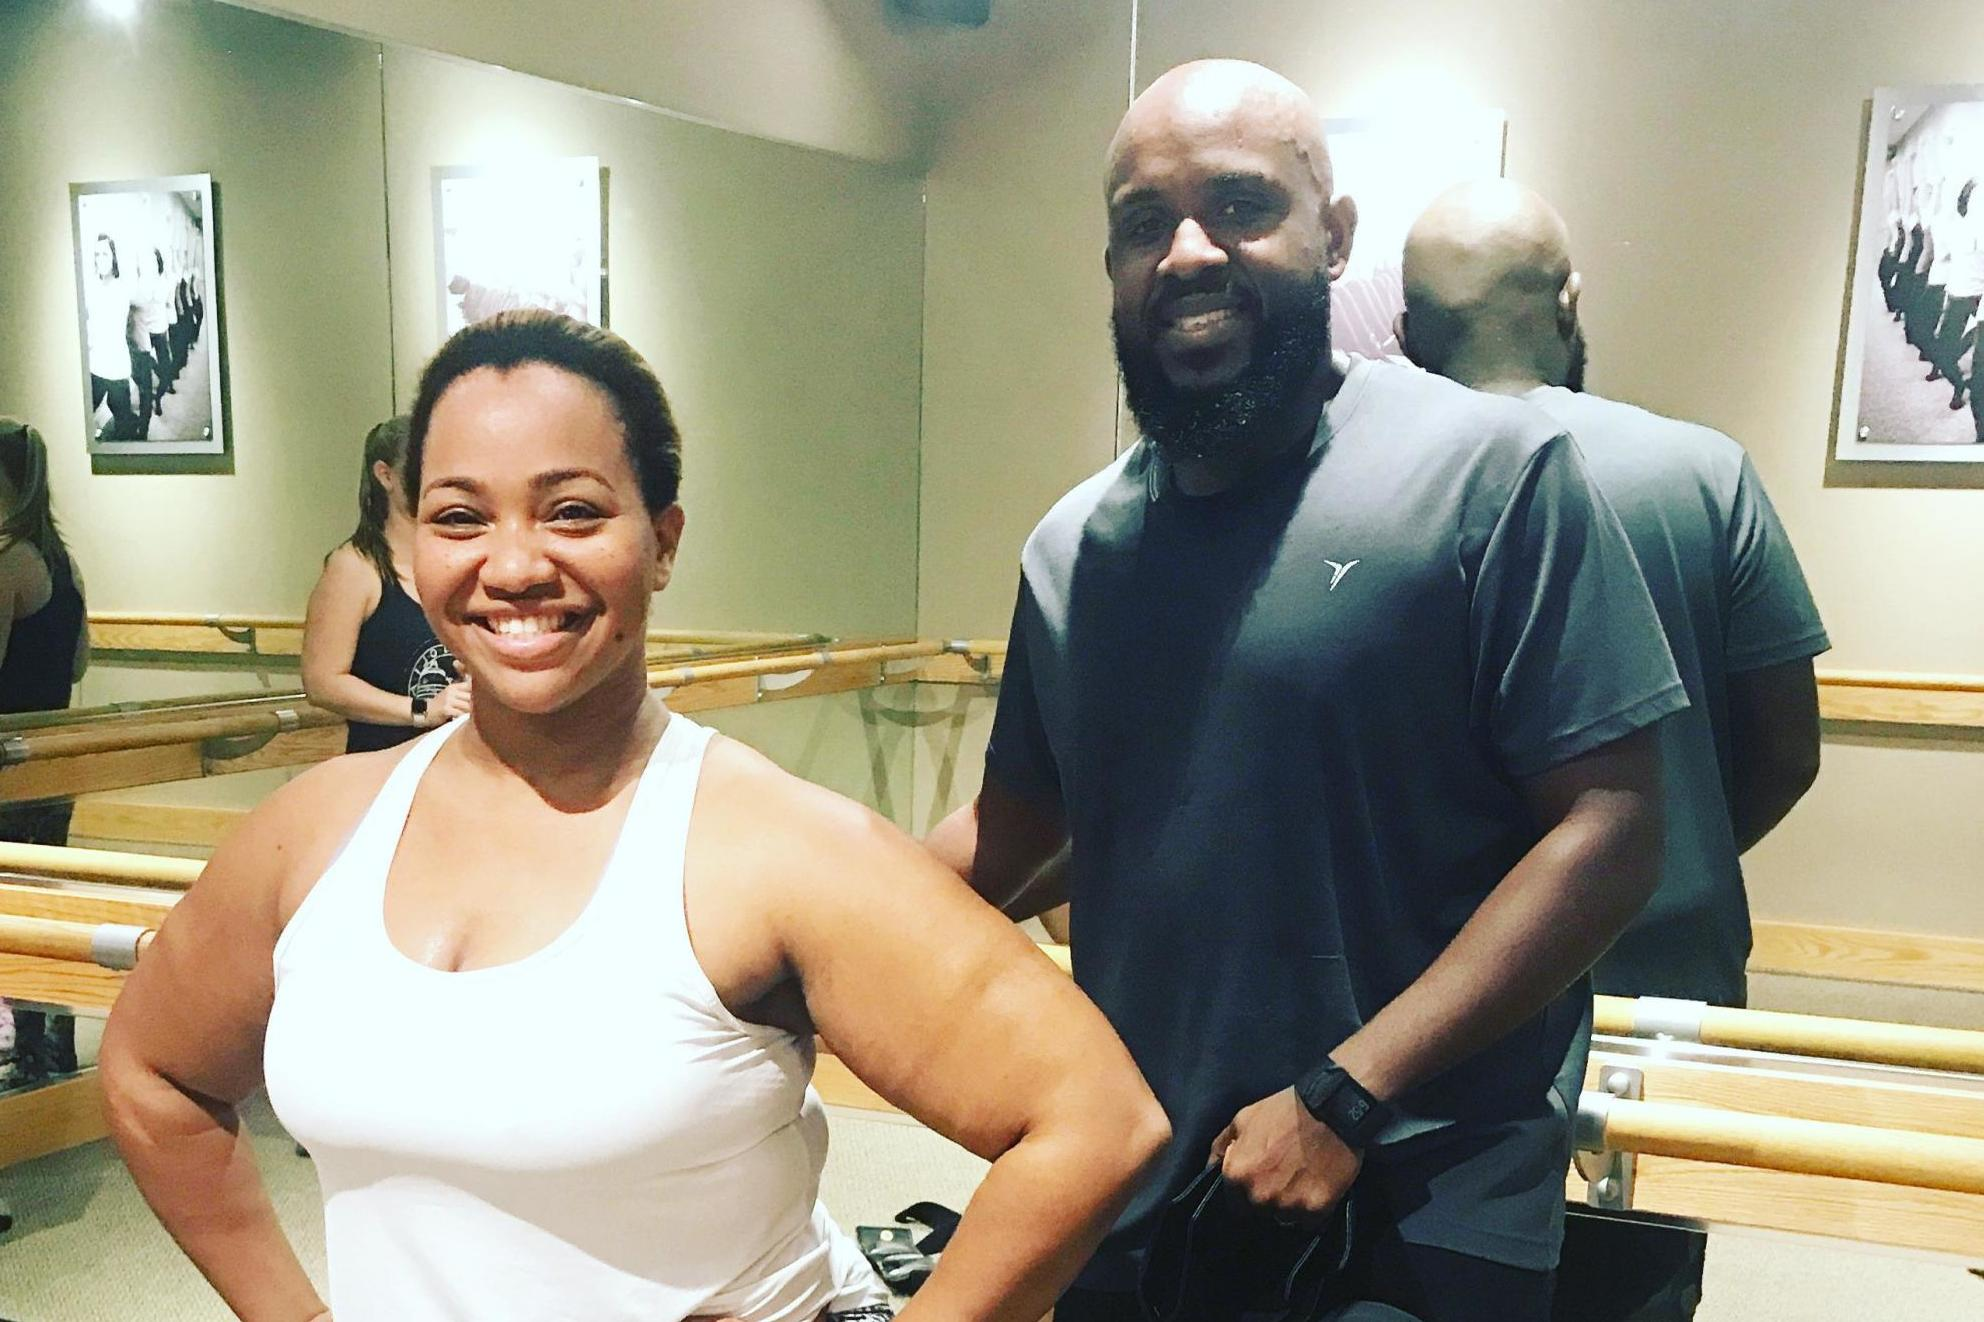 Obese couple shed 123lbs combined thanks to barre workouts